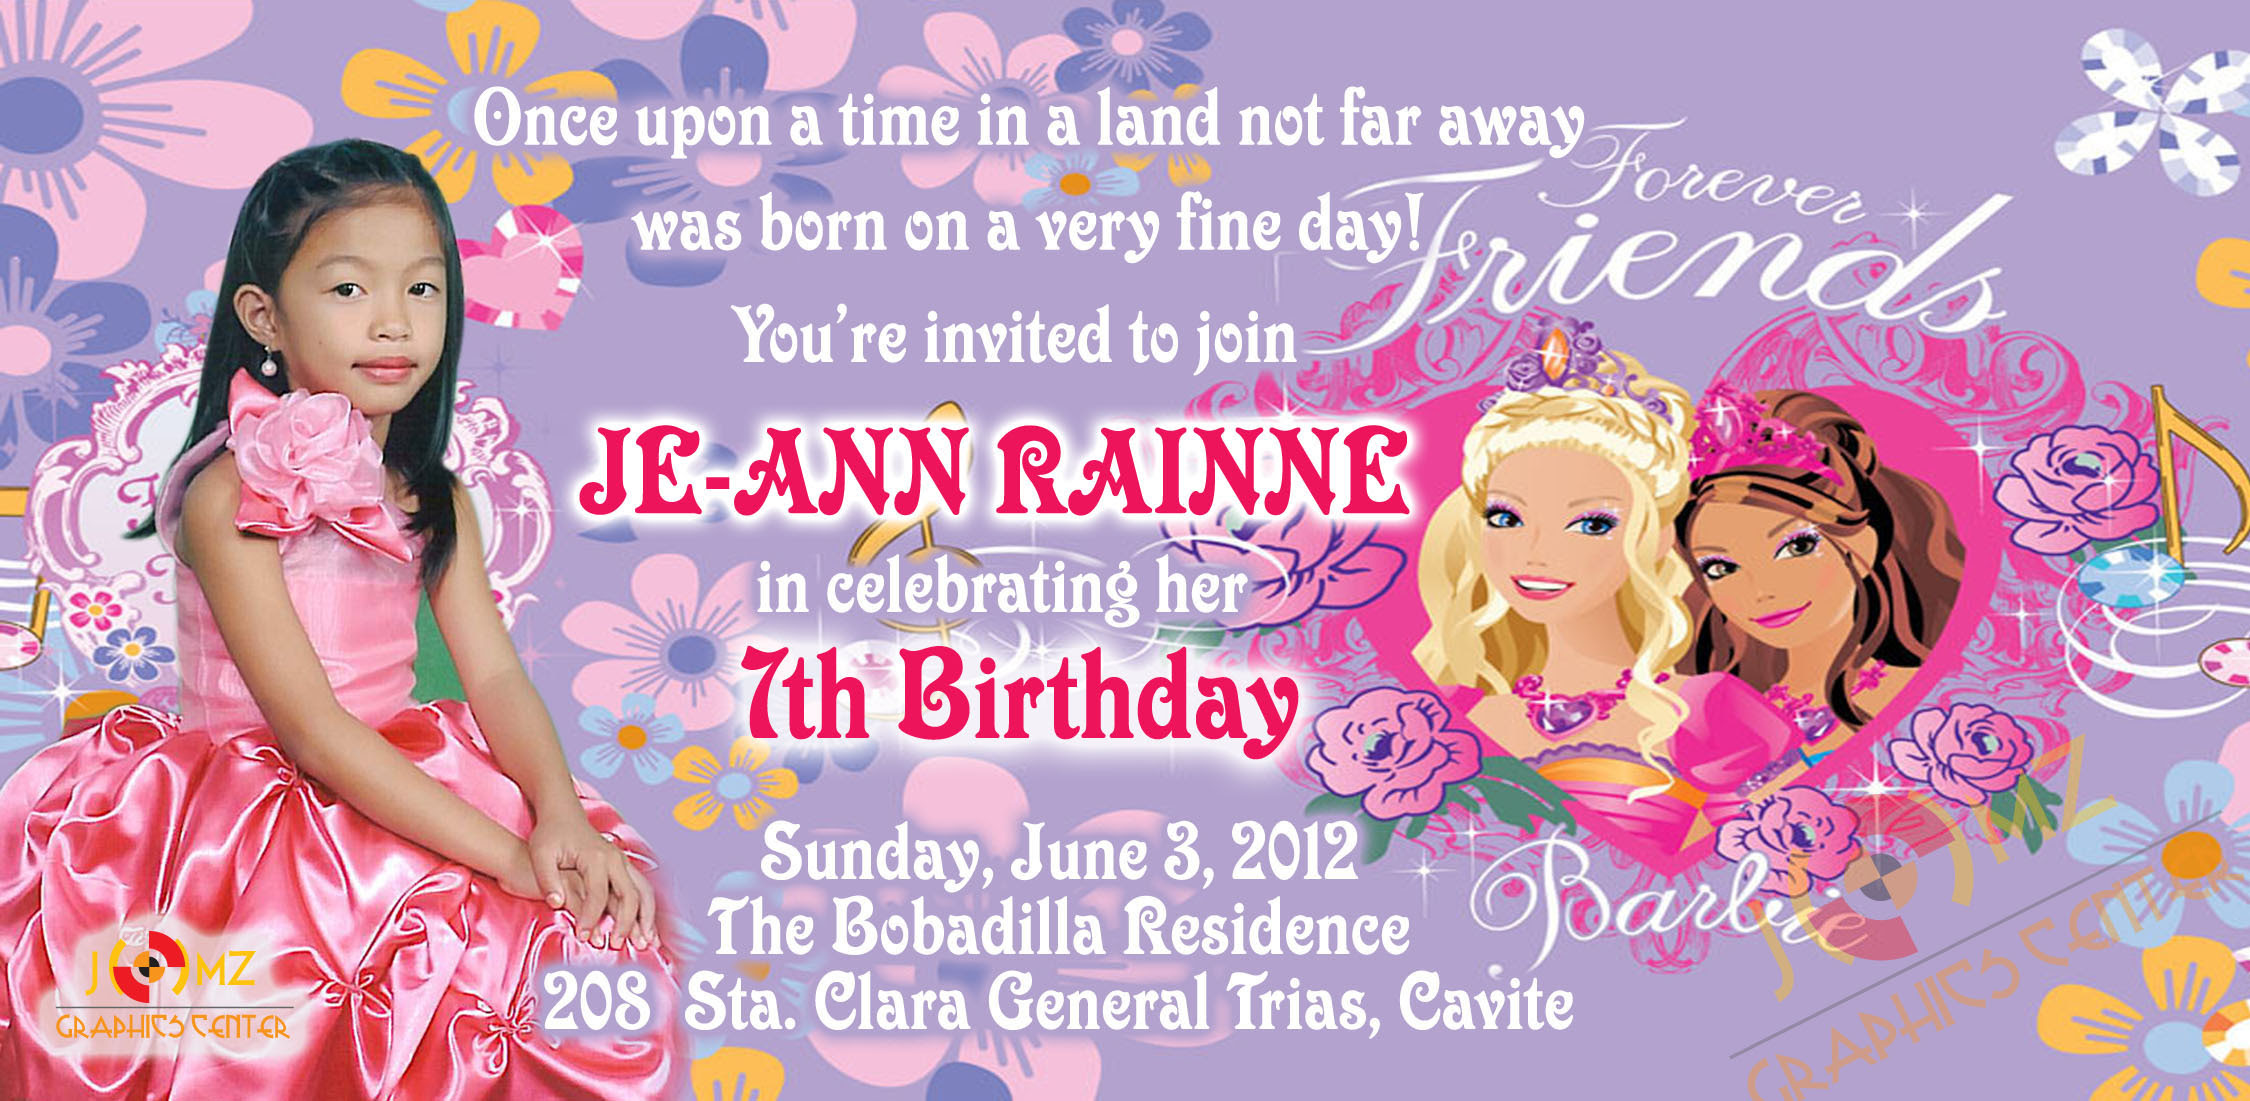 7th birthday barbie invitation card